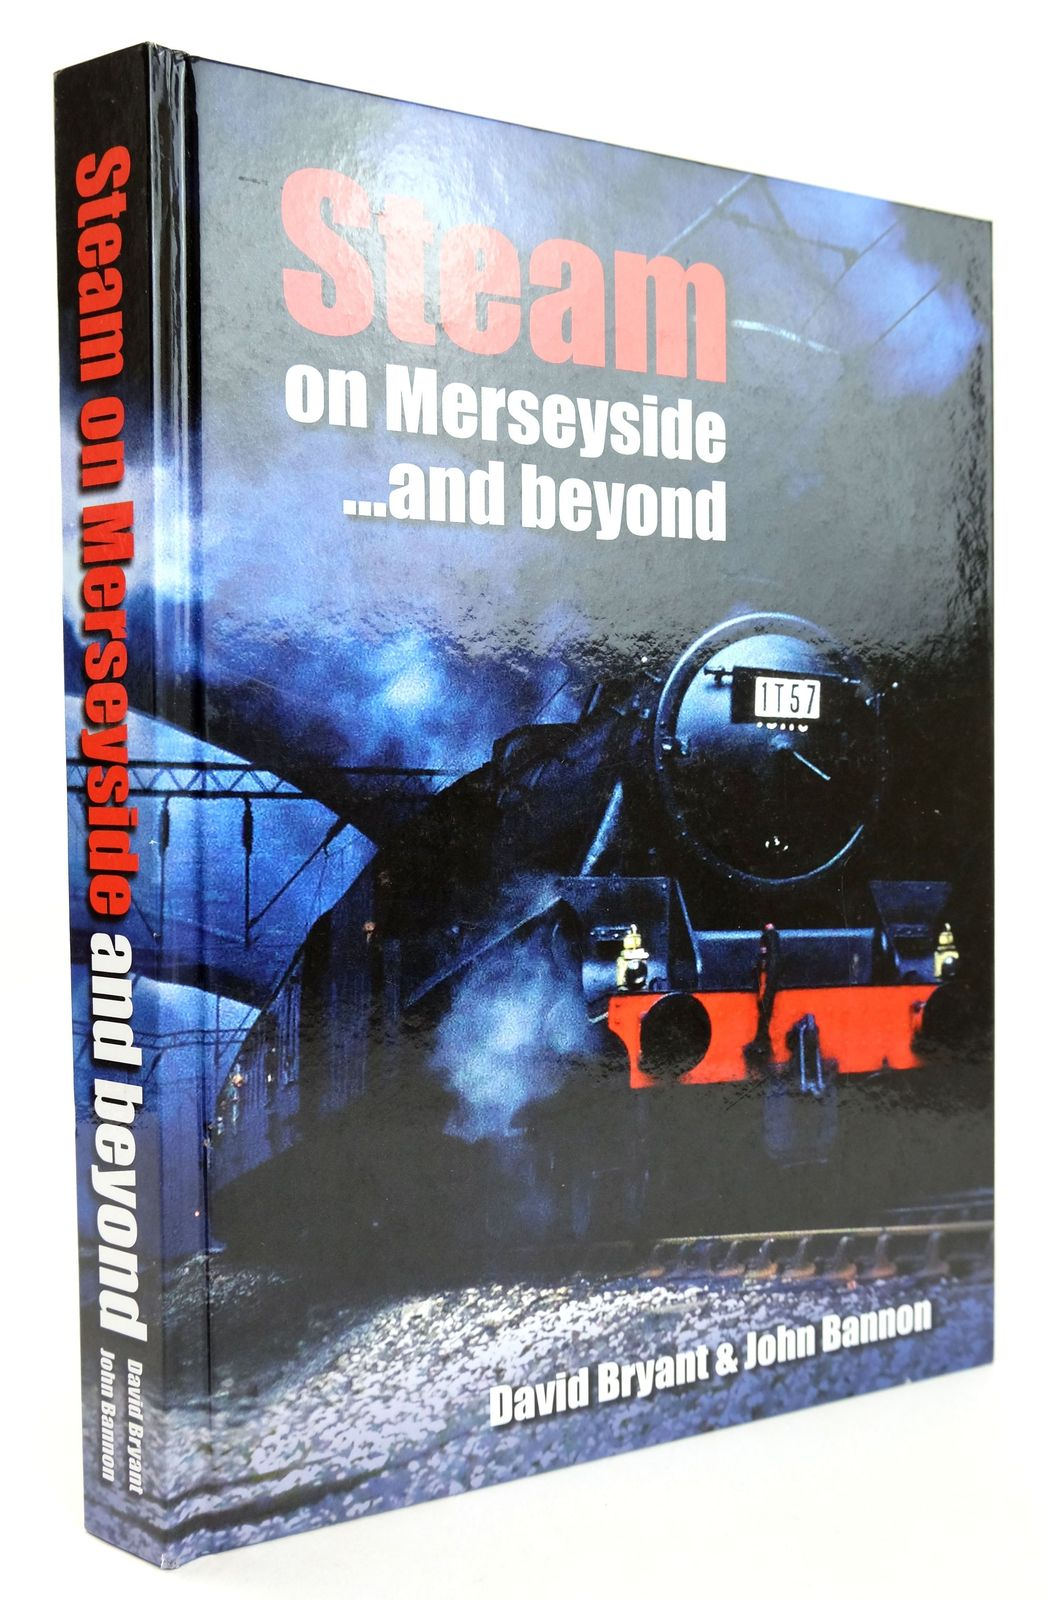 Photo of STEAM ON MERSEYSIDE ...AND BEYOND written by Bryant, David Bannon, John published by Thirtynineassociates (STOCK CODE: 1819035)  for sale by Stella & Rose's Books